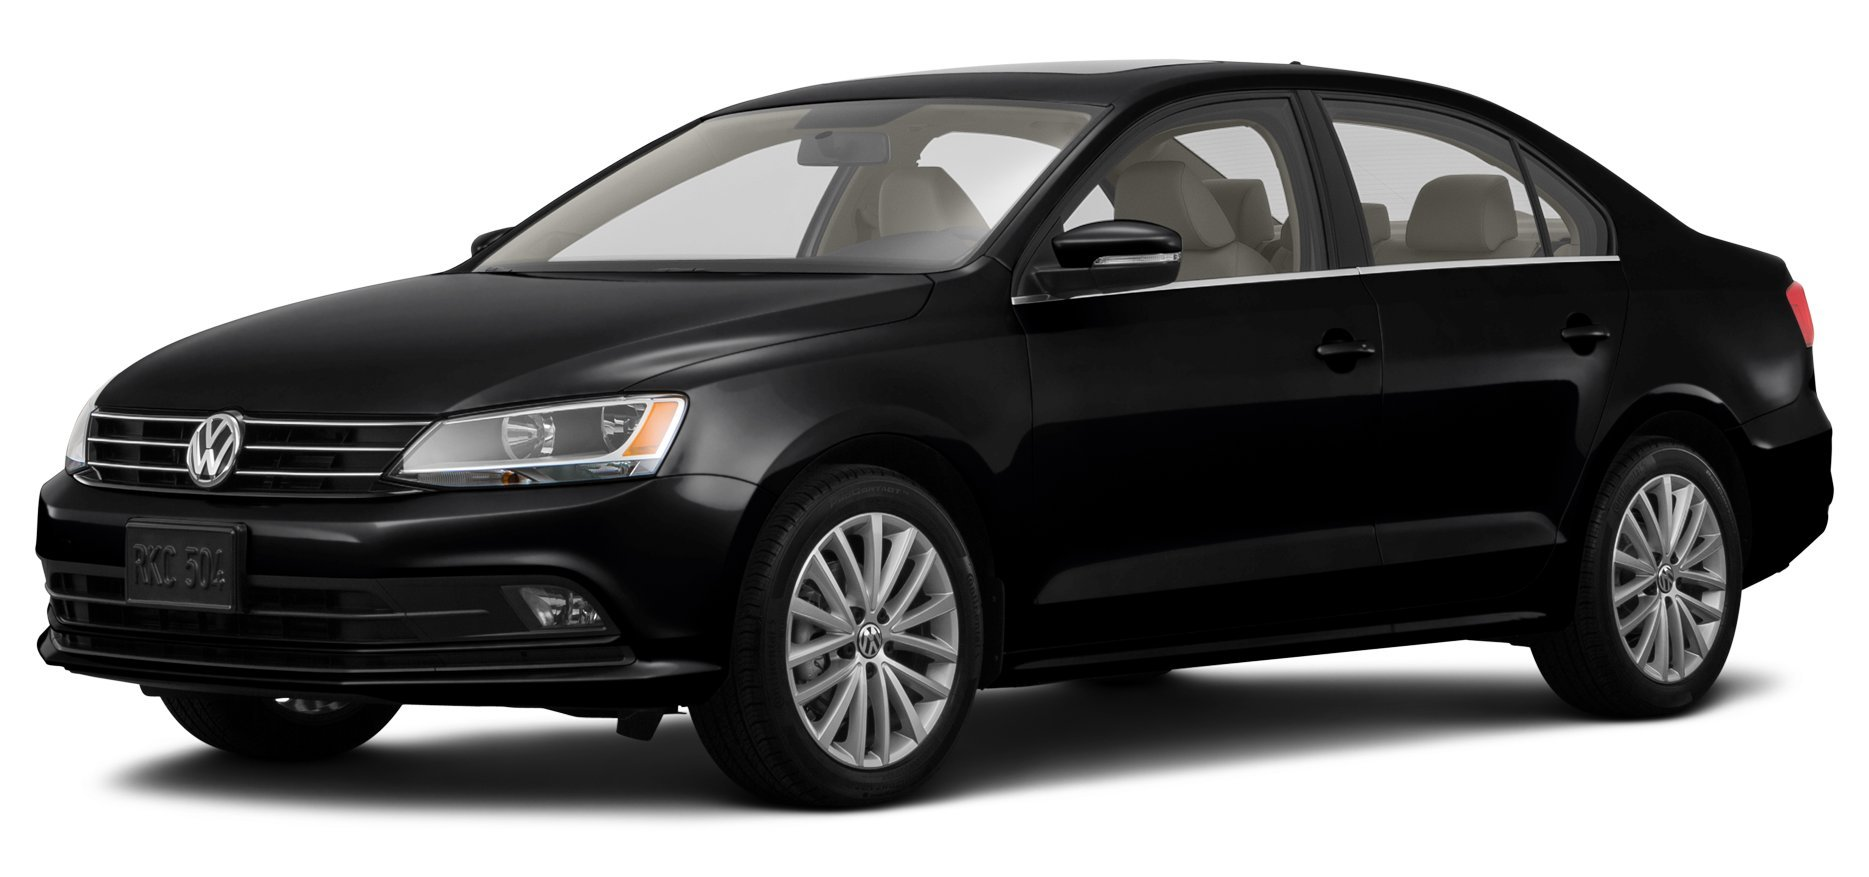 2015 volkswagen jetta reviews images and specs vehicles. Black Bedroom Furniture Sets. Home Design Ideas